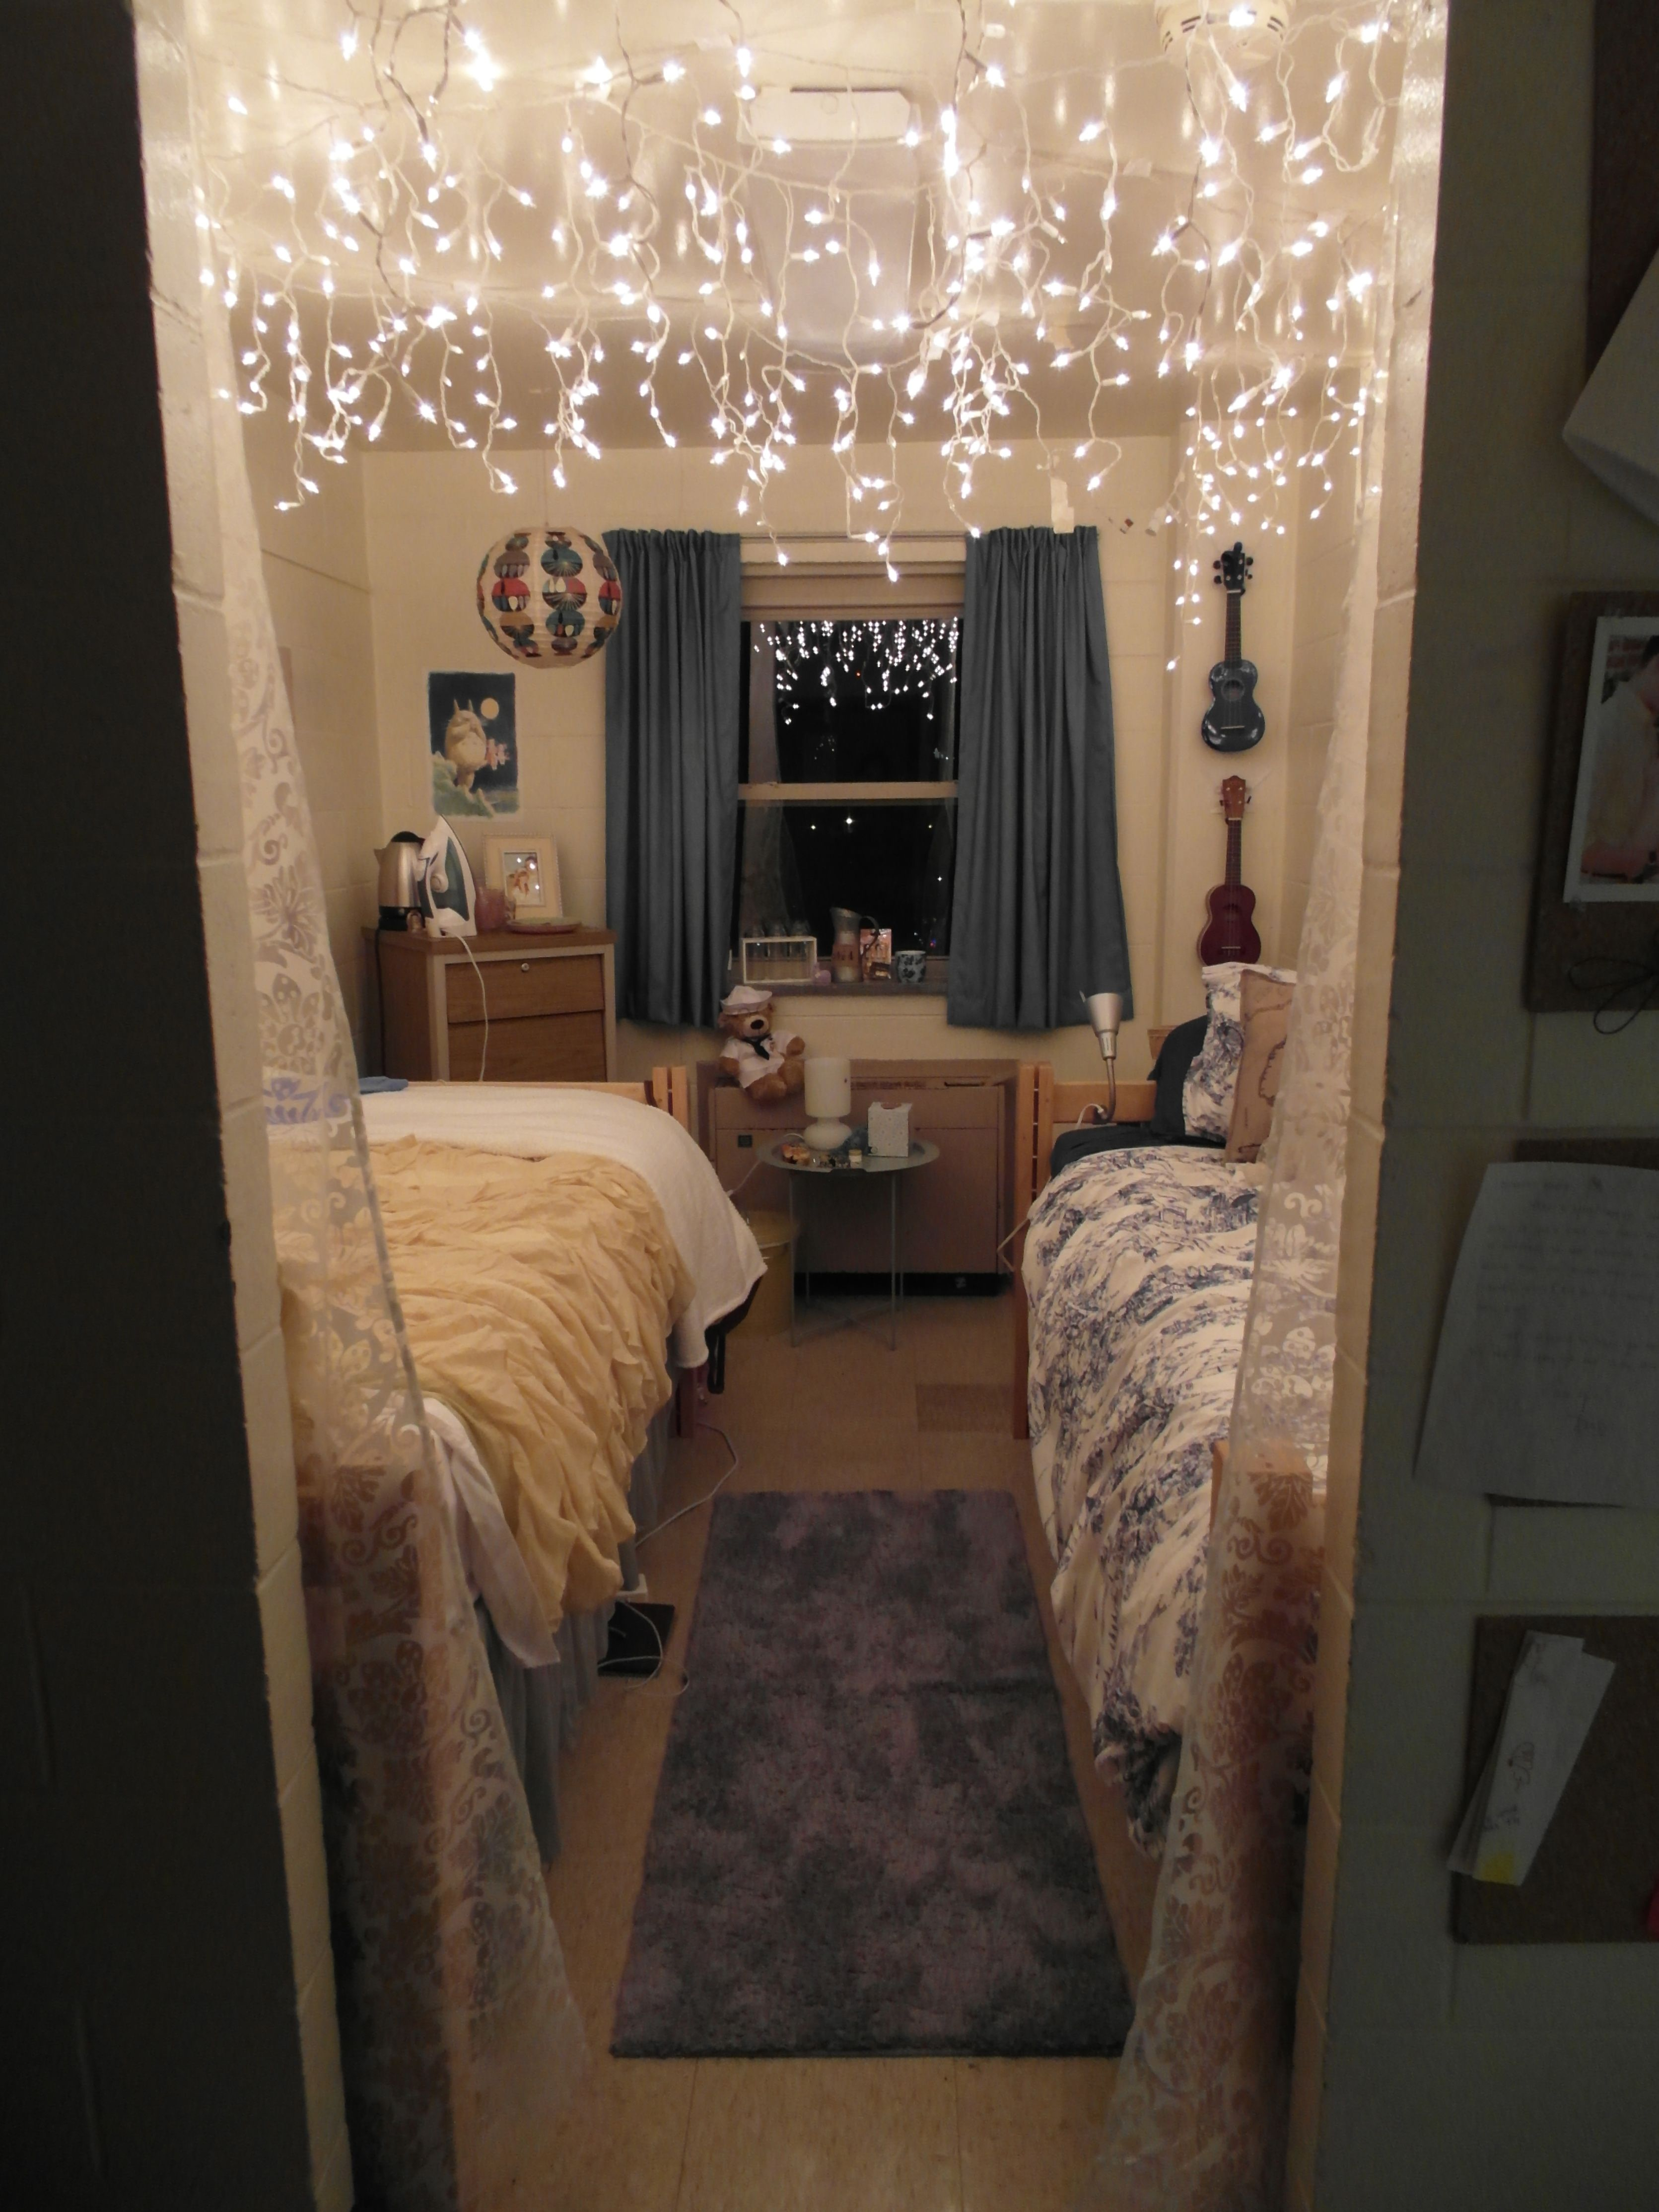 for of bedroom dorm kids about the fairy on secrets you maxx unique string new light ideas decorative will know best lights boys never creative pinterest